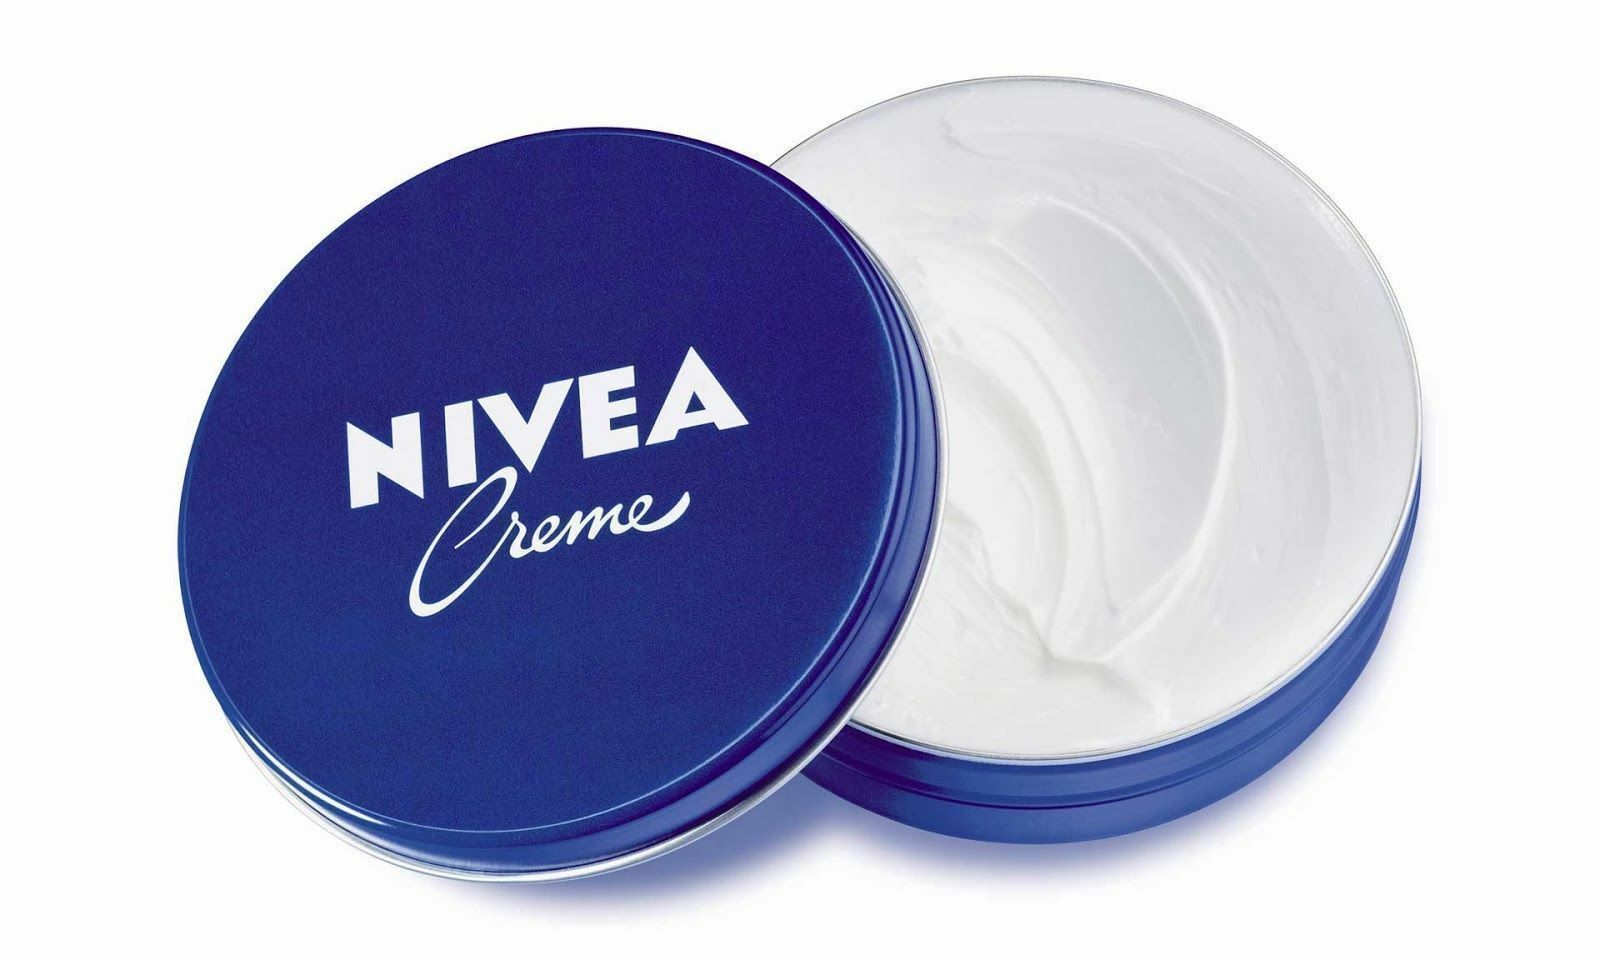 60 ml NIVEA CREME  for Face,Body & Hands Moisturizer for Dry Skin free shipping